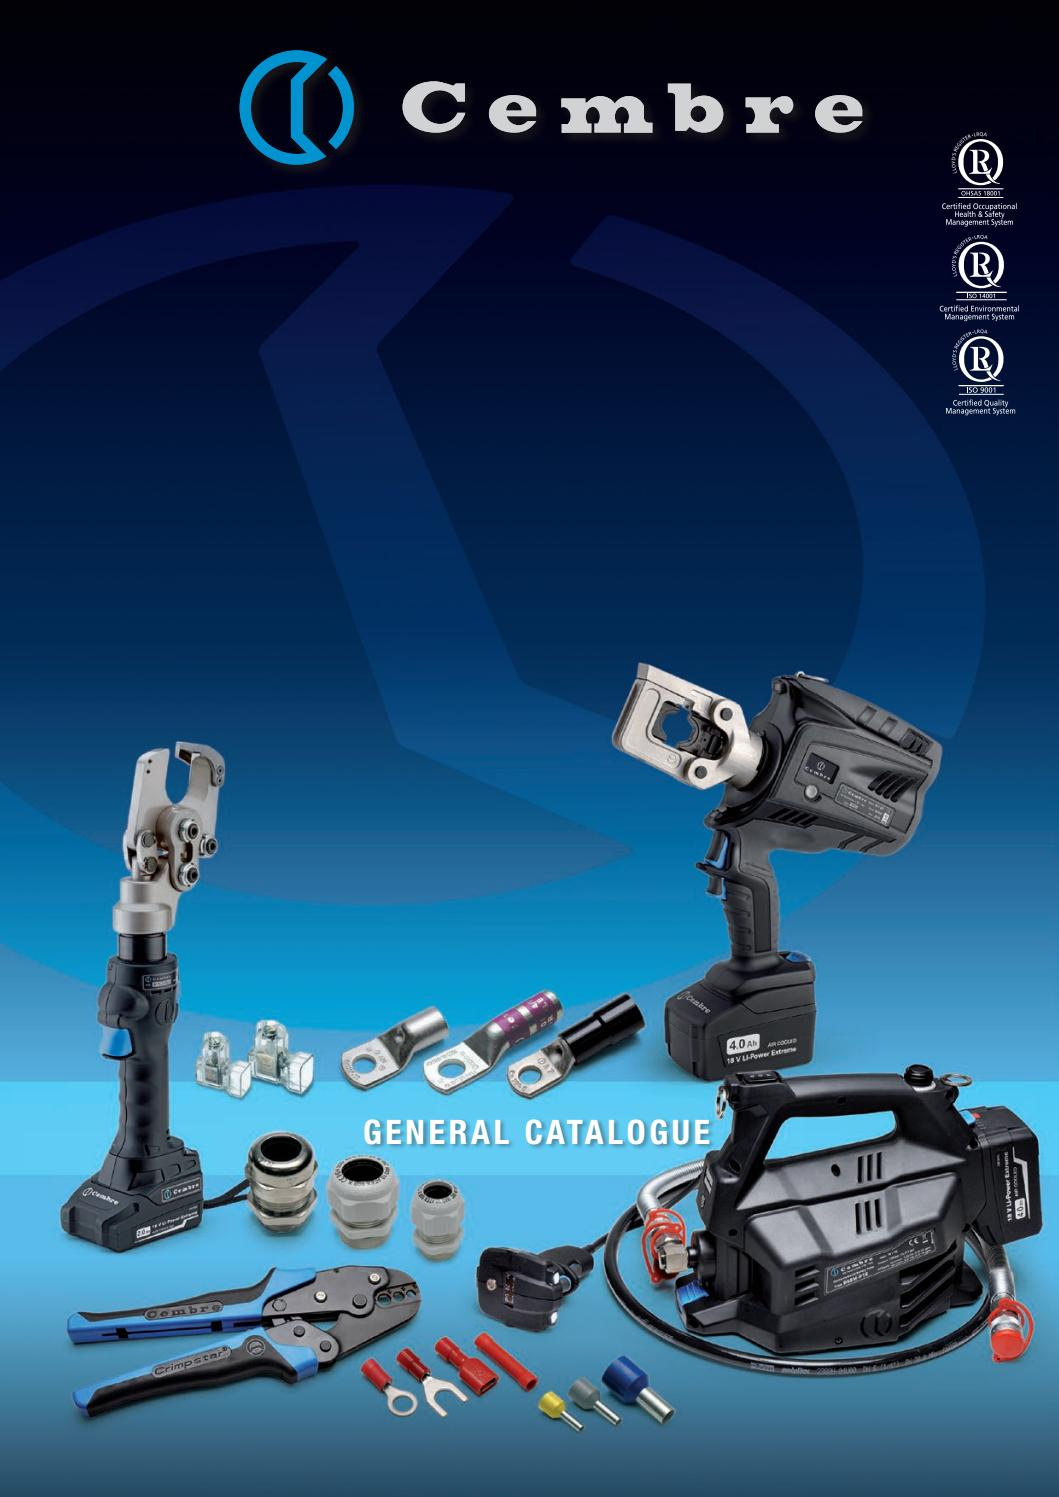 General Catalogue By Cembre Spa Issuu Mk5 Circuit The Best Choice For Compatibility With Remote Controls